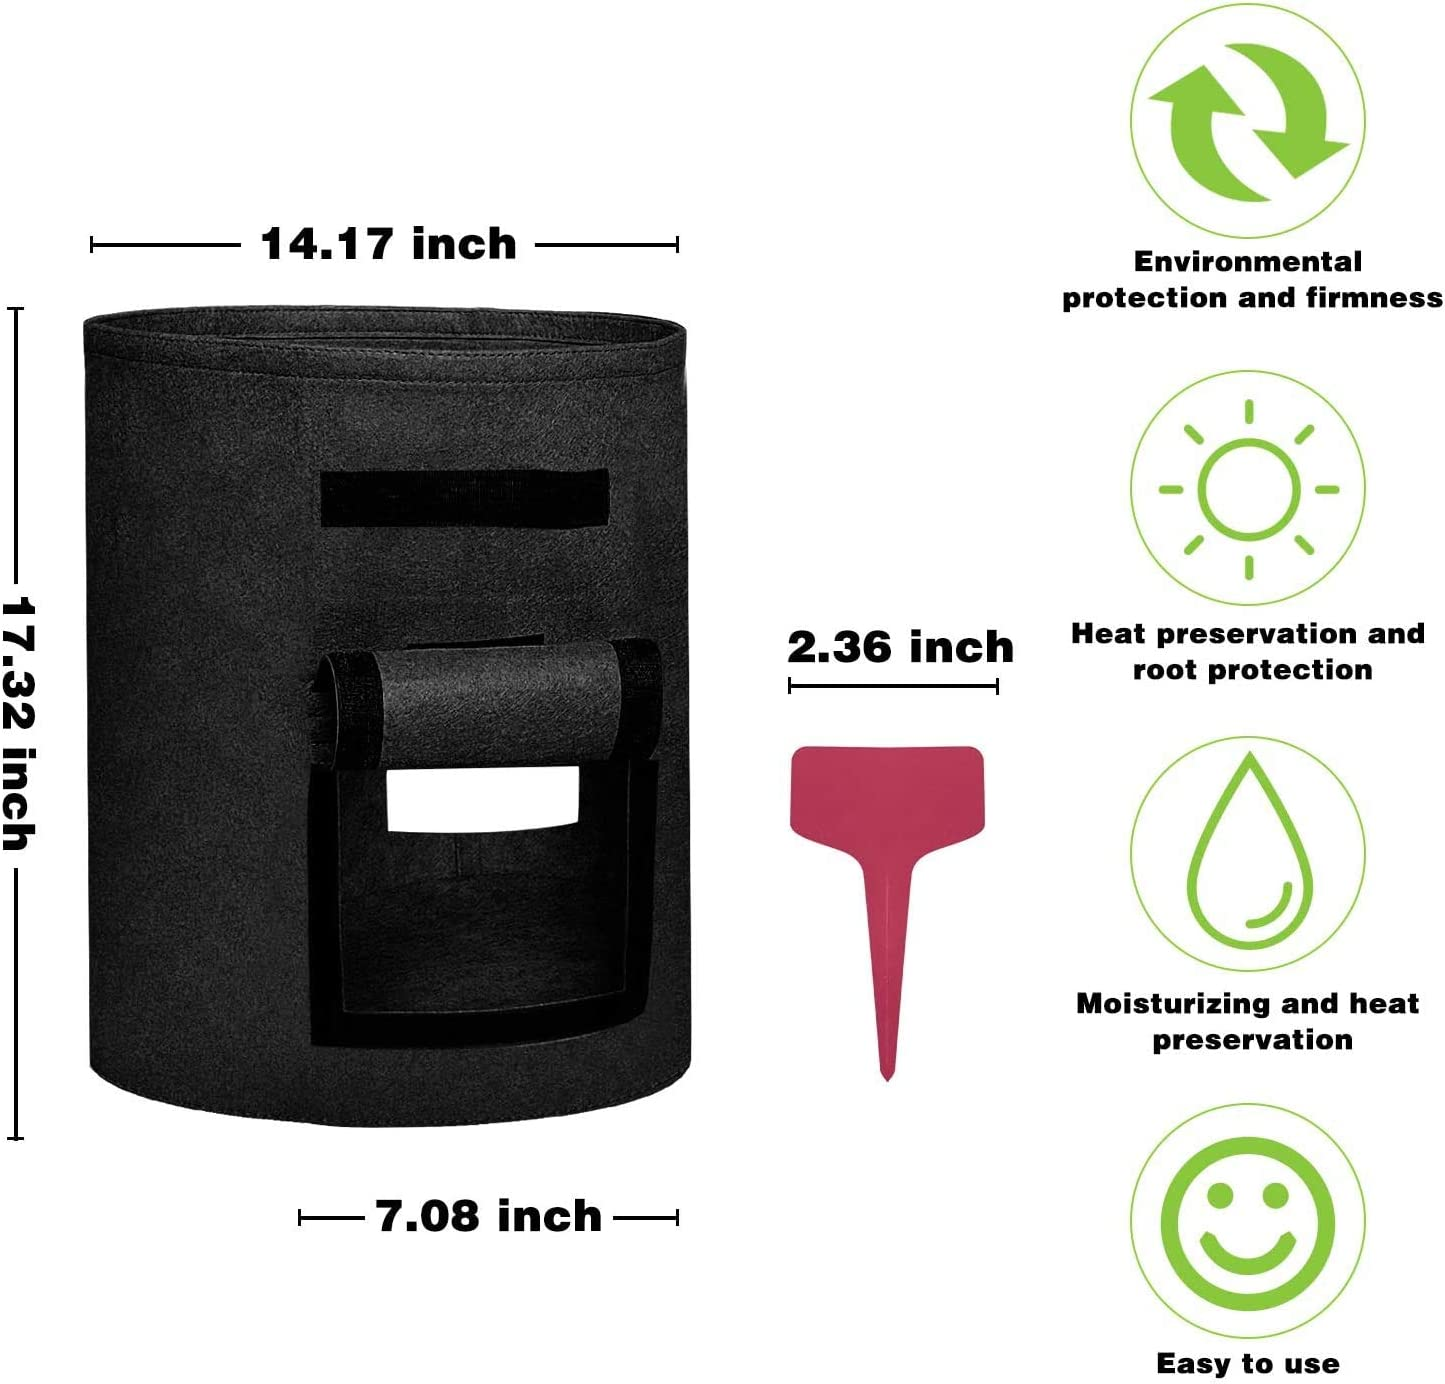 Black MIXXIDEA Potato Grow Bags Plant Growing Bag Vegetables Planter Bag Breathable Cloth Bags Two Side Windows for Planting Potato Carrot Onion Peanut,10 Gallon 5 Pack